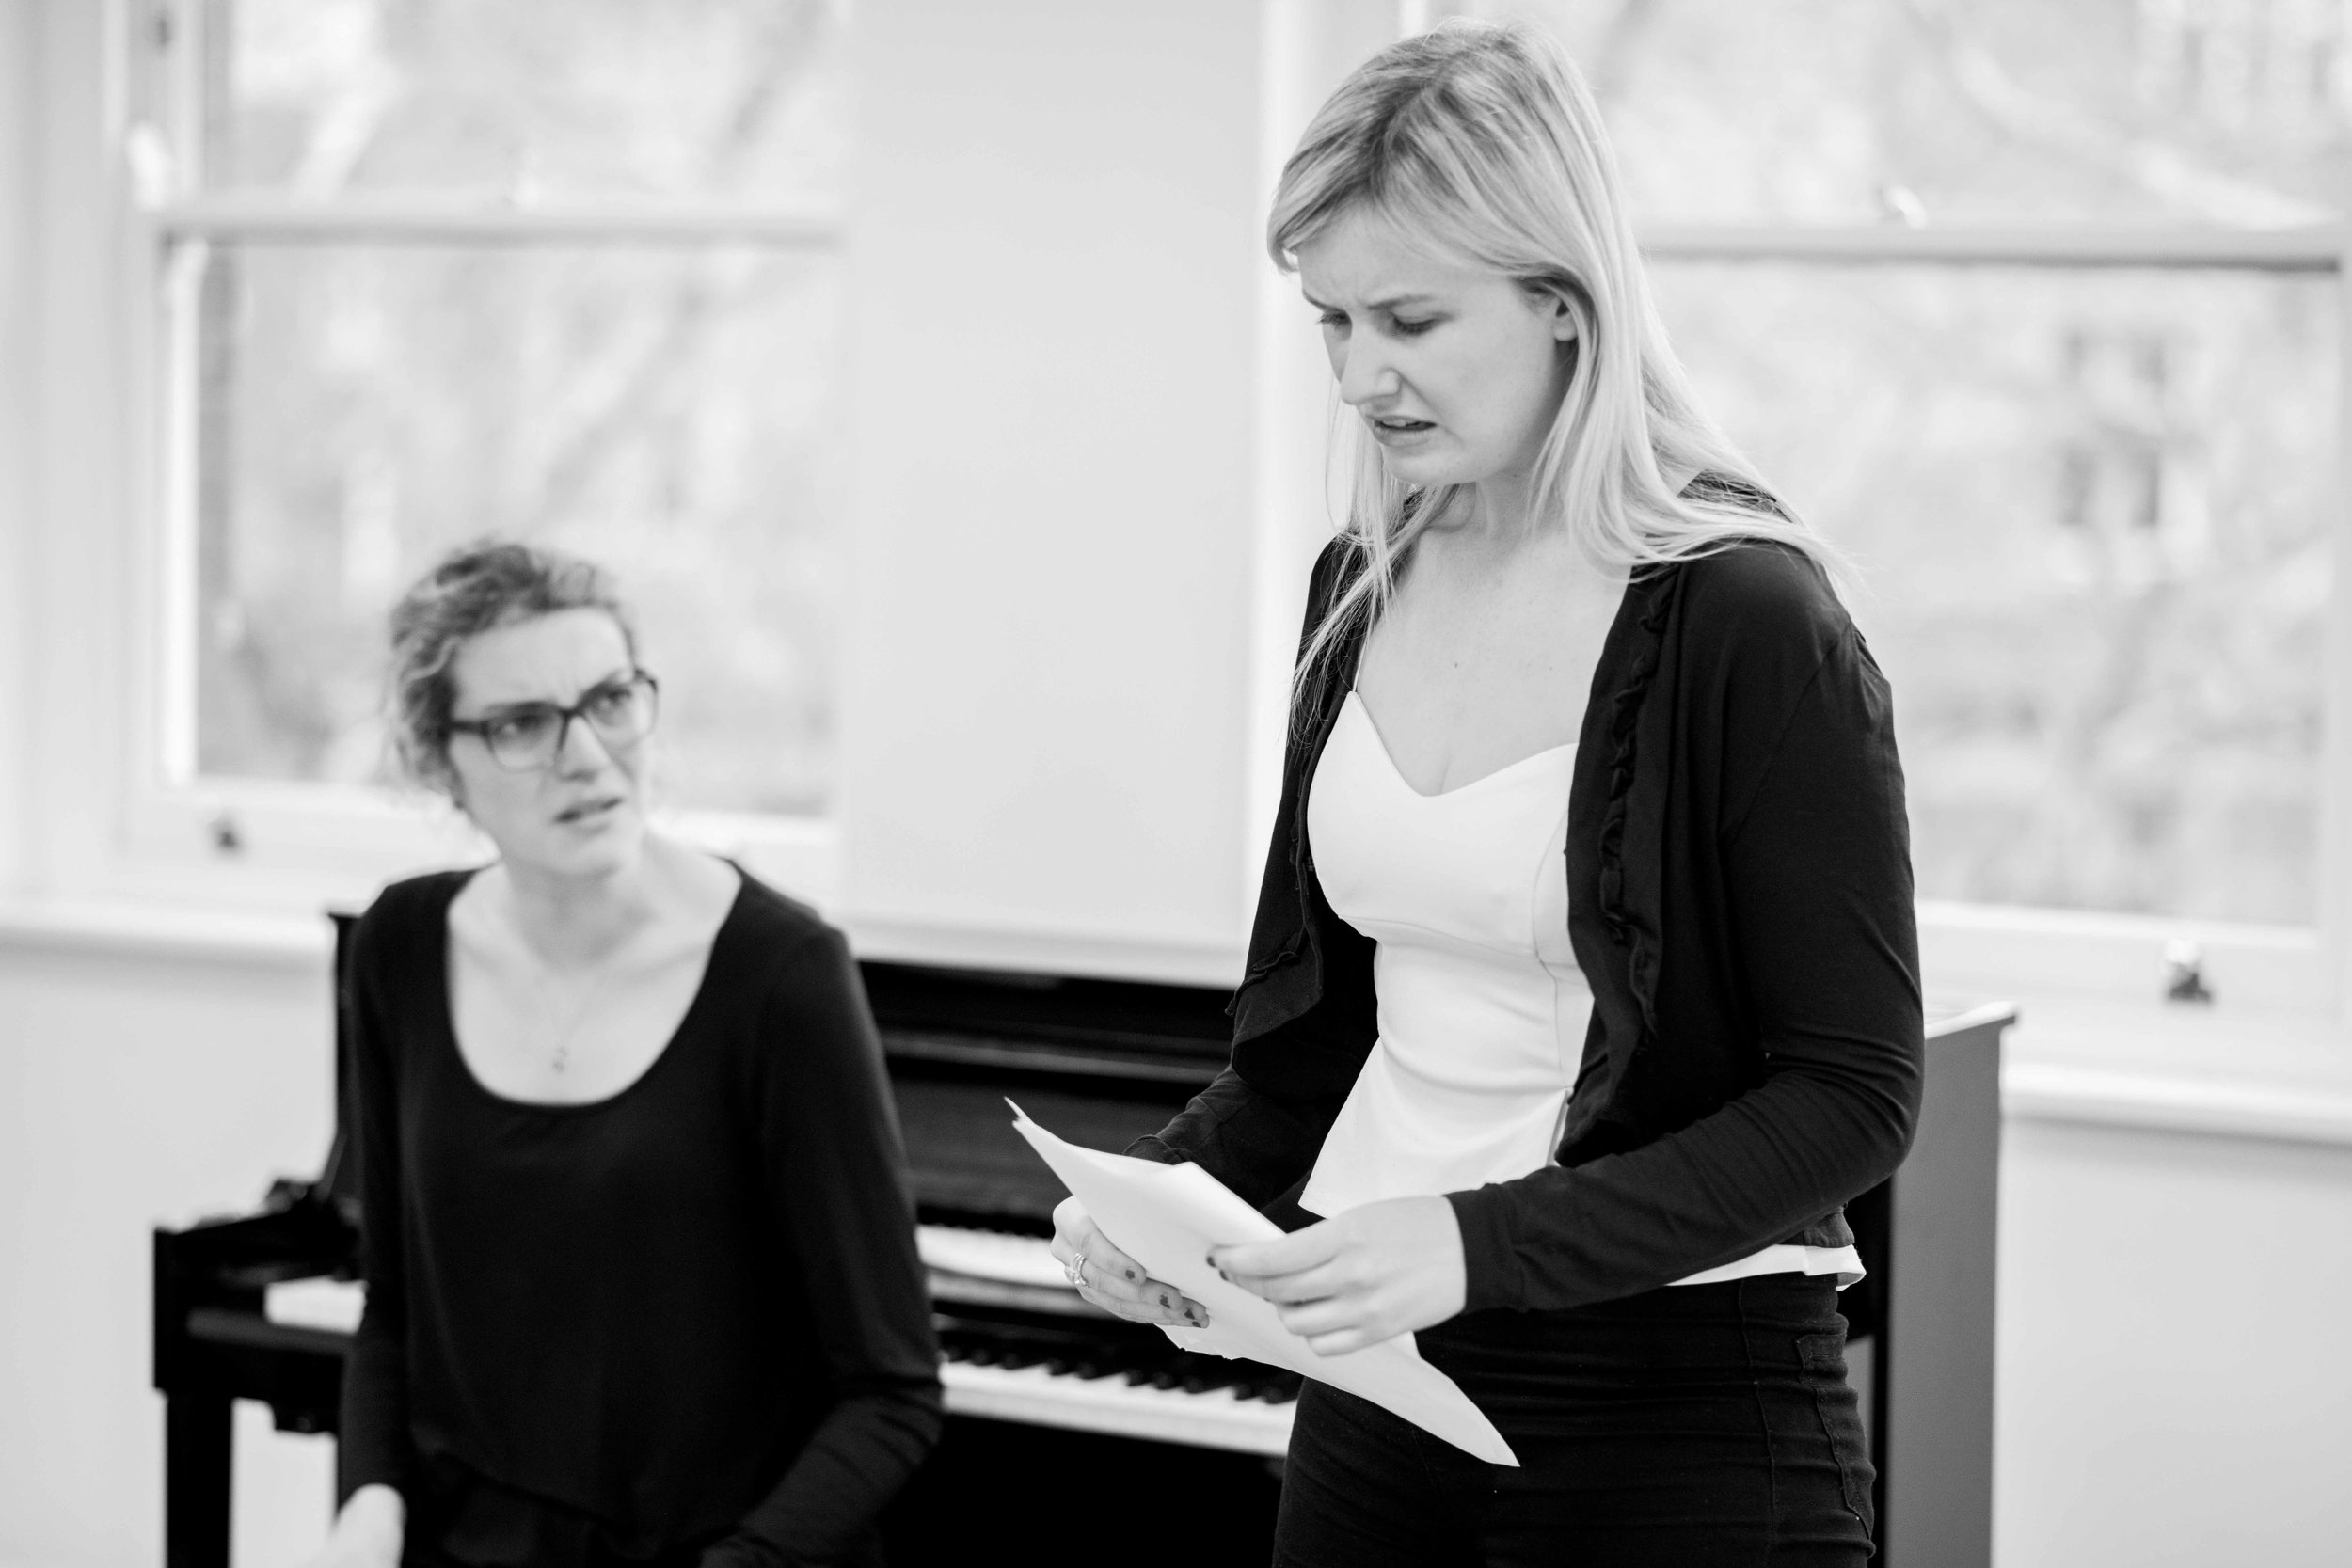 CamillaGreenwell_MEIWES_BRANDES_Rehearsals_6090-LOWRES.jpg